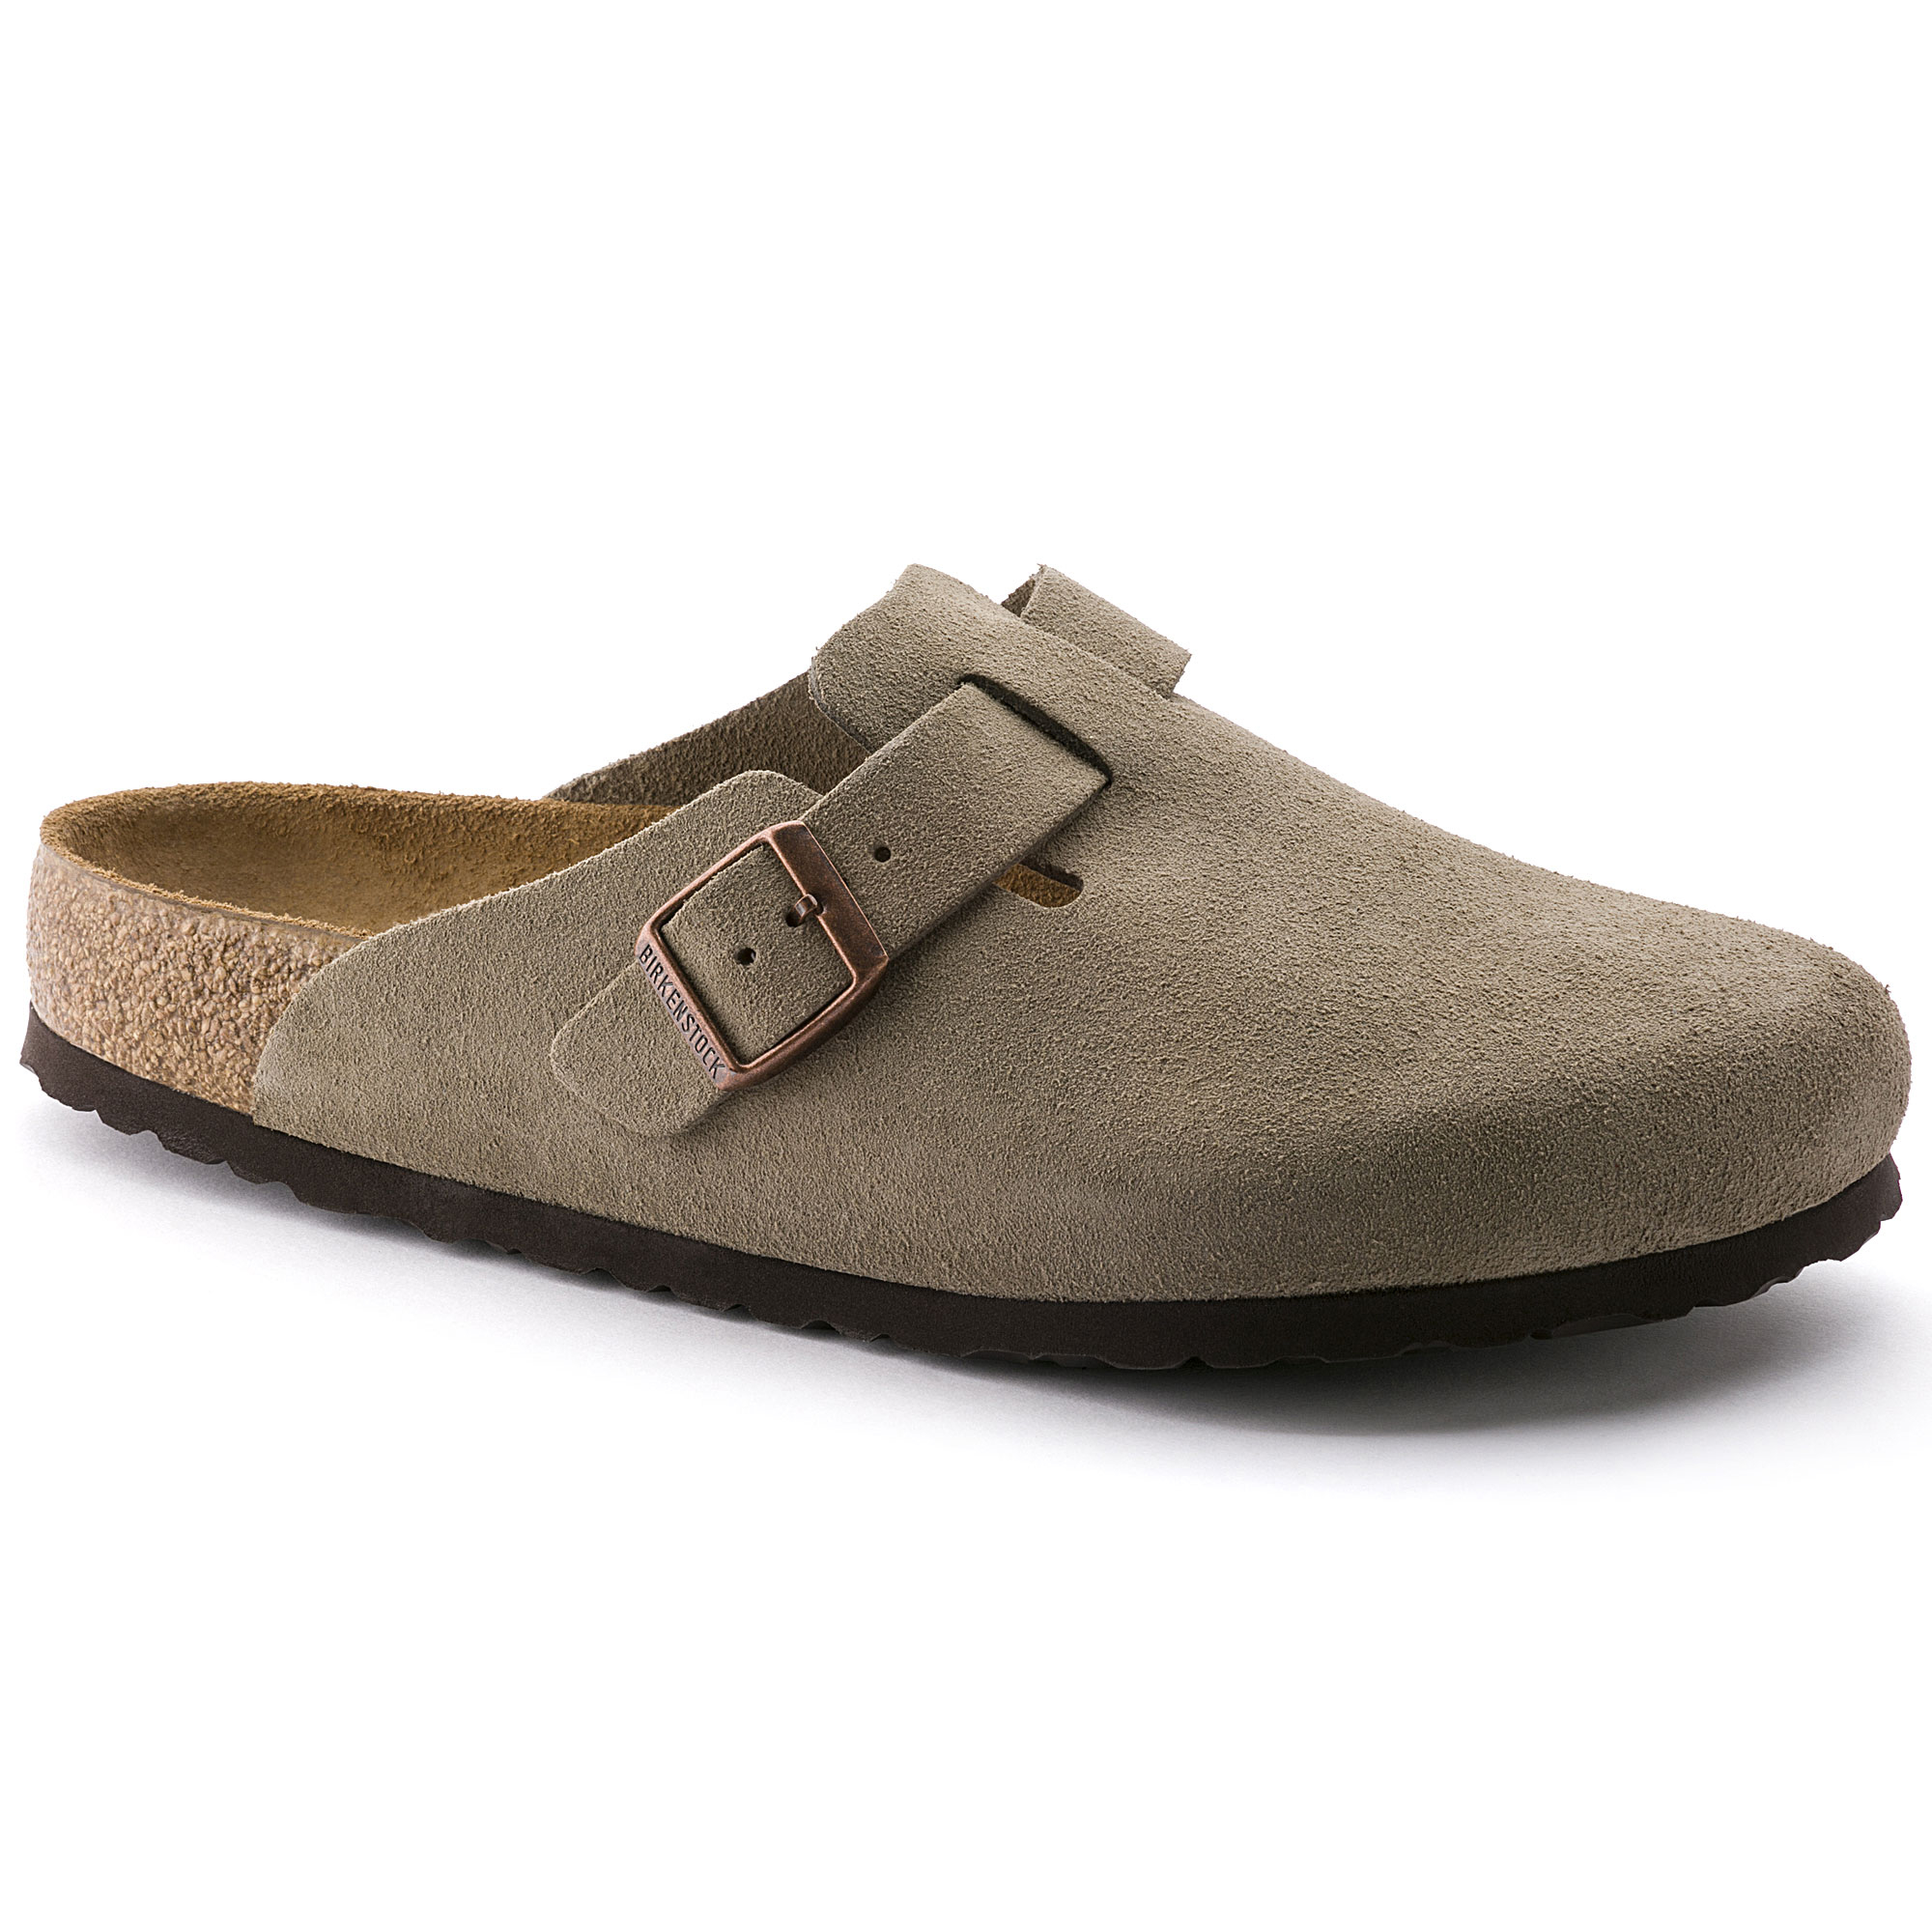 8f5dda3a9b94 Boston Suede Leather Taupe